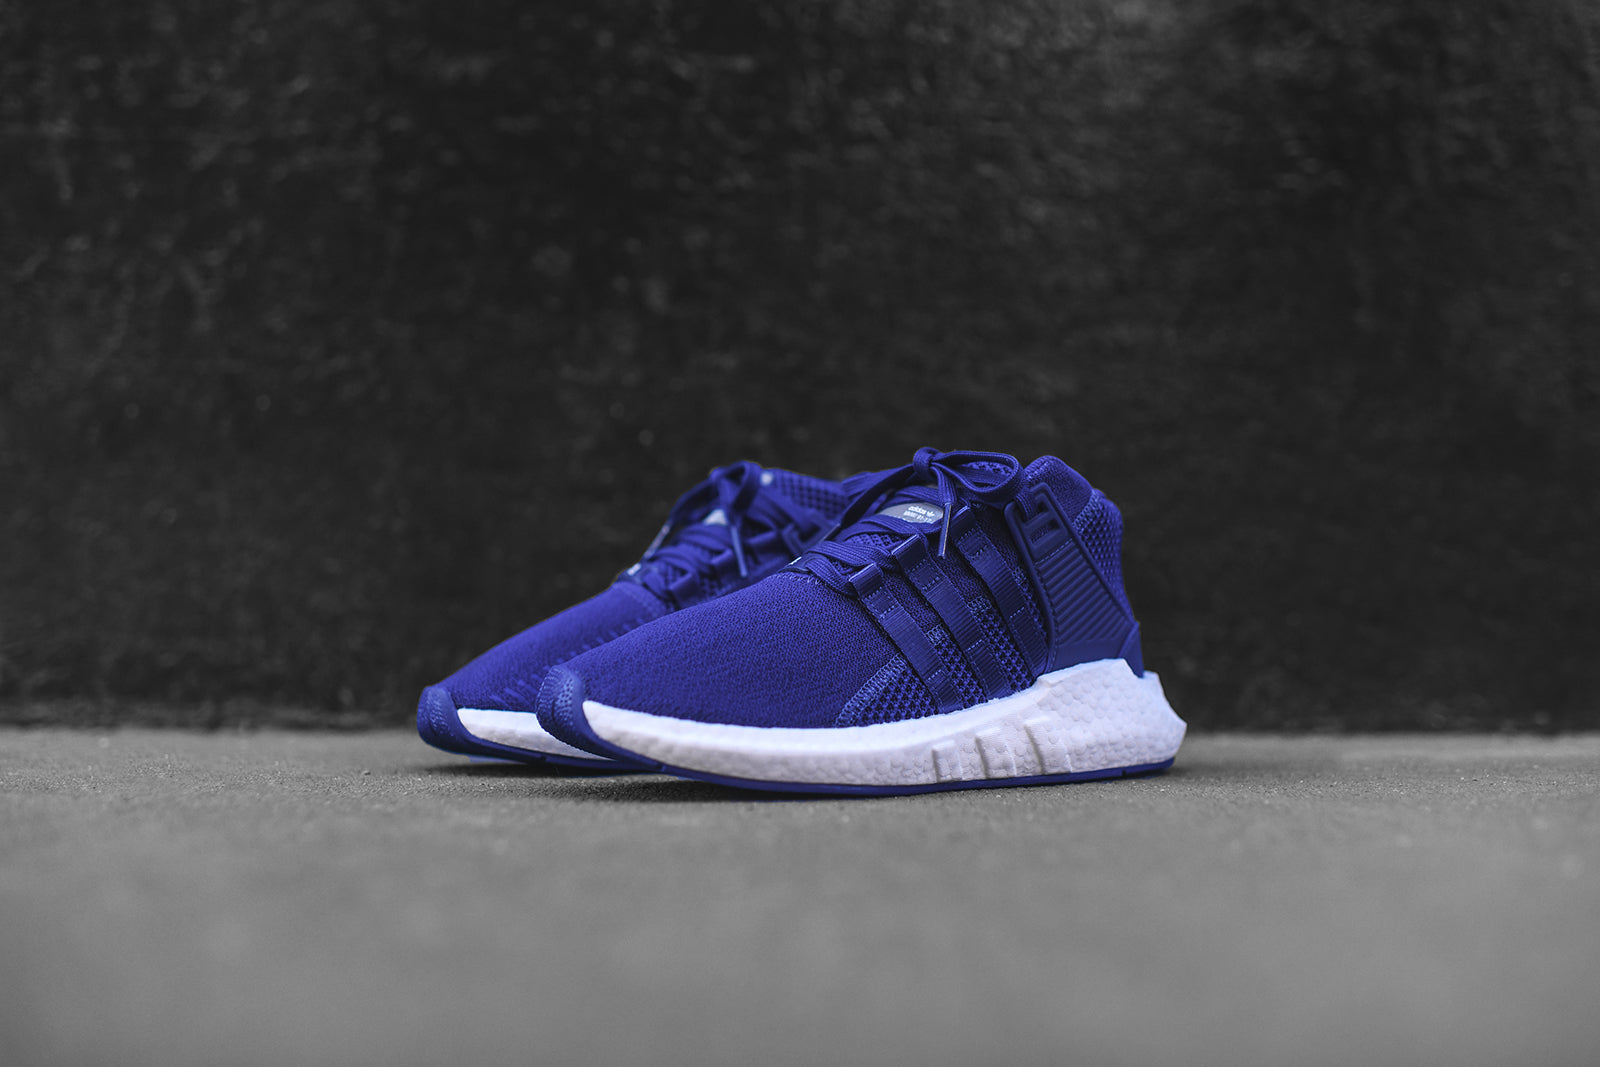 sports shoes 0665b c8e93 adidas Originals x Mastermind World EQT Support 9317 - Mystery Ink